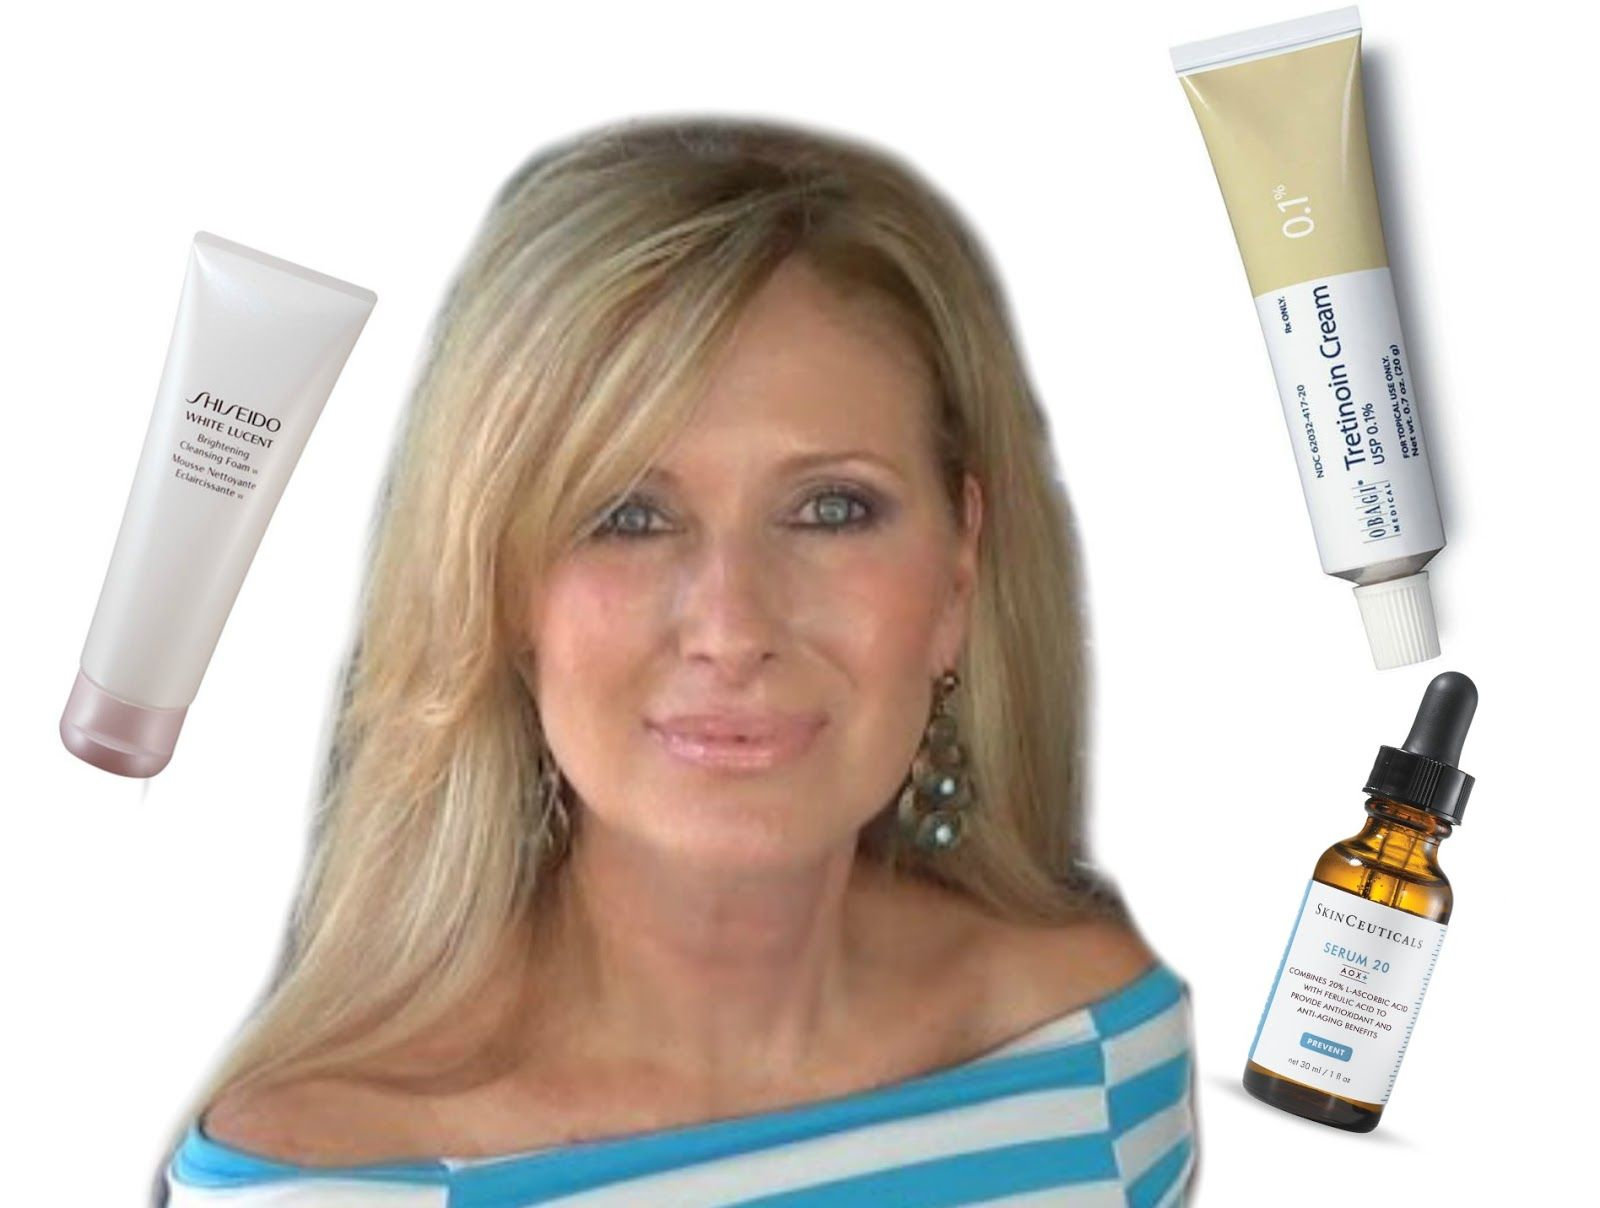 Most Gorgeous 60 Year Old Reveals Her Skin Care Secrets This Is The Best Anti Aging Skin Care Routine Skin Care Secrets Skin Care Blackheads Skin Care Routine